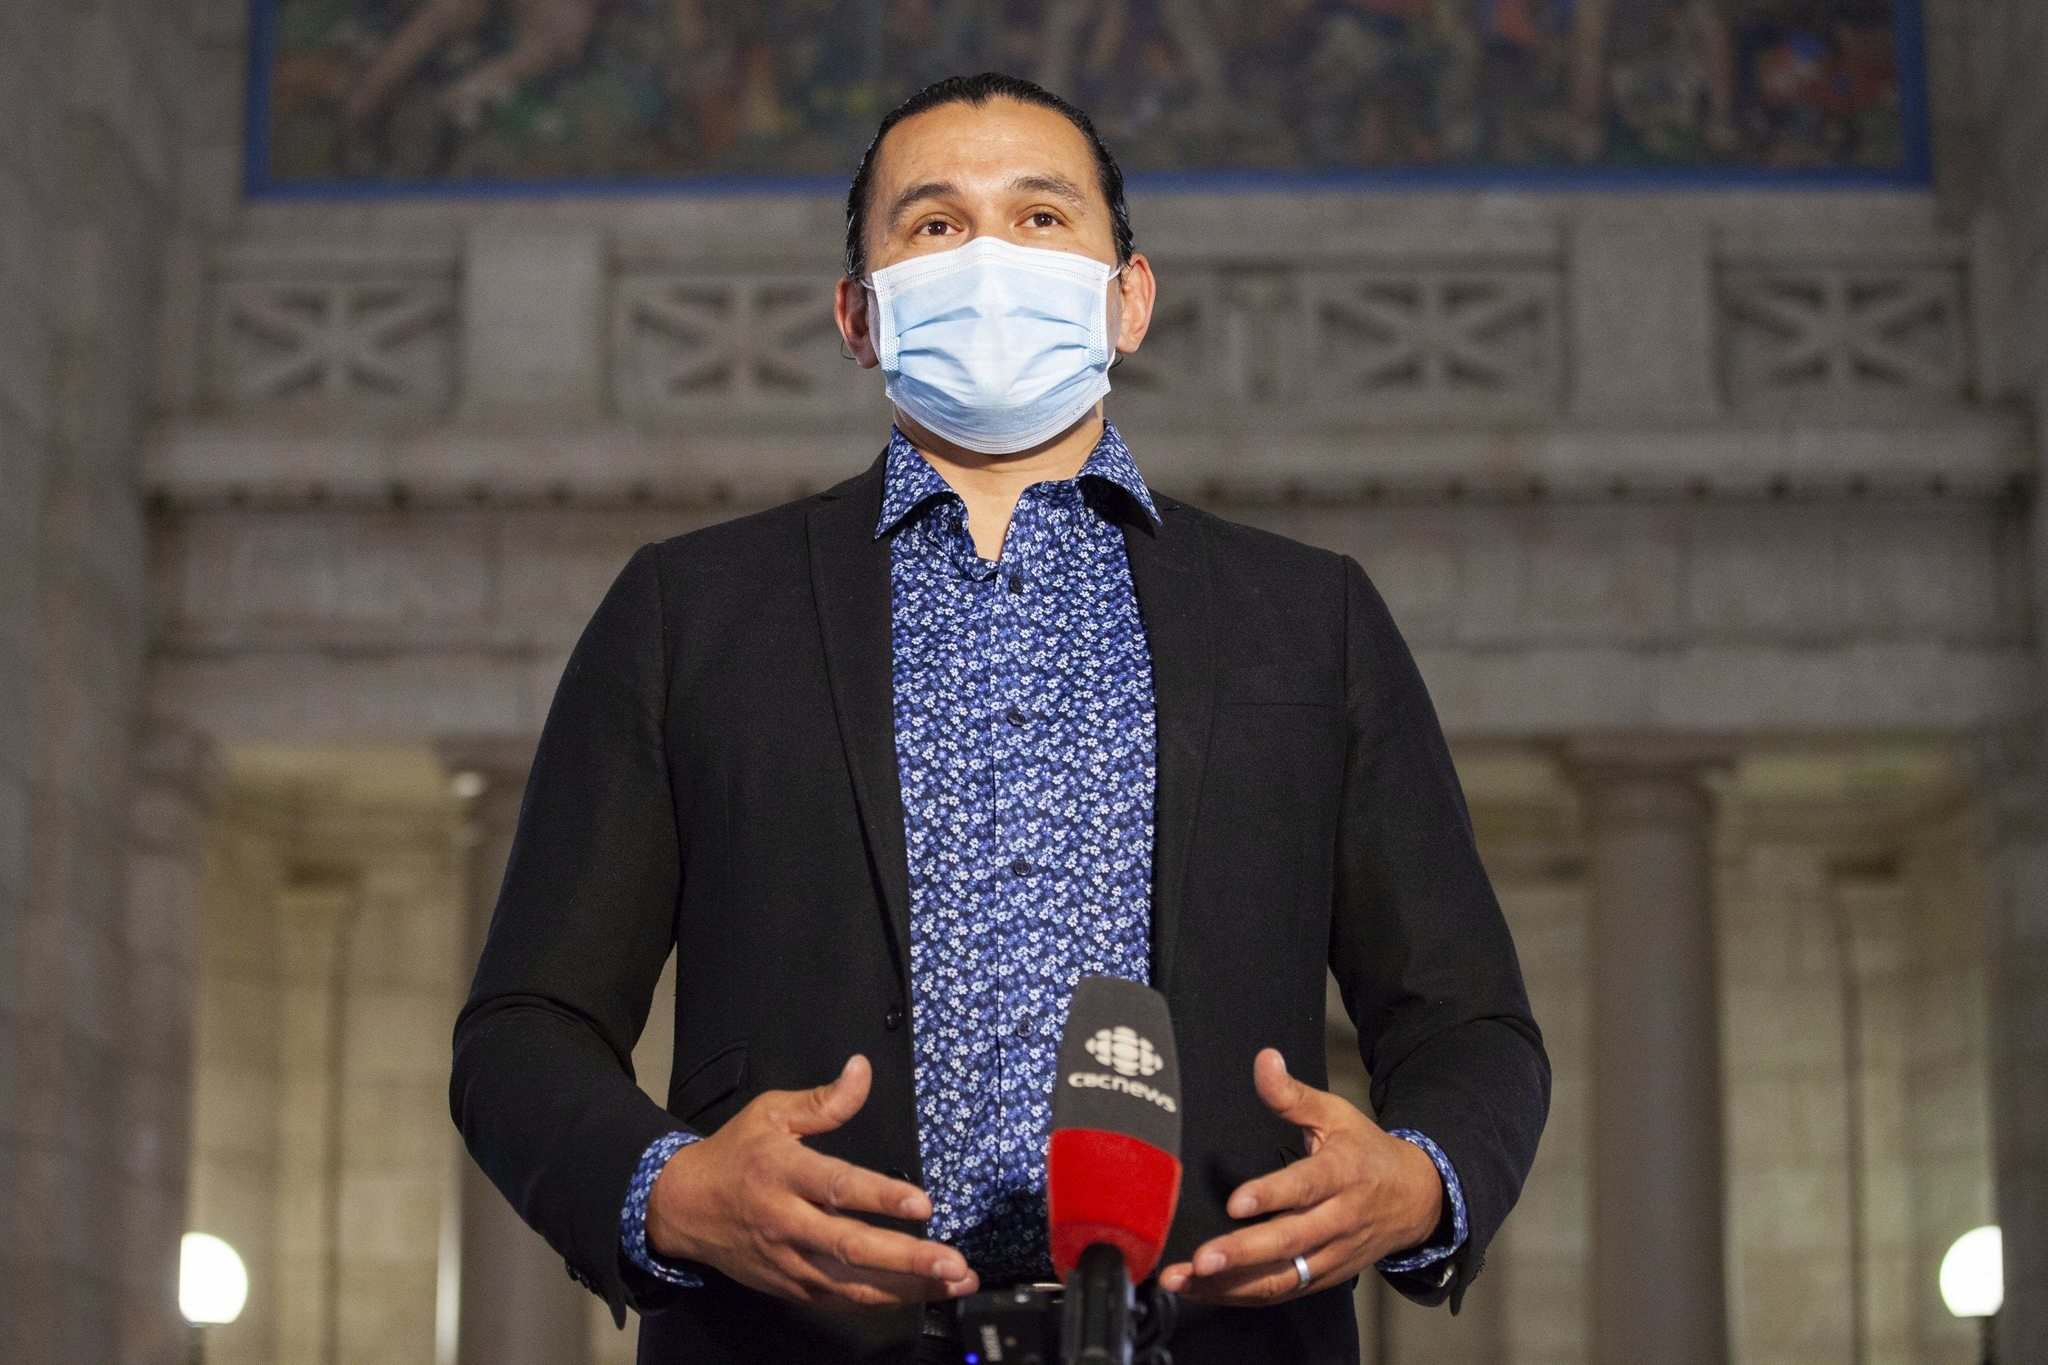 NDP Leader Wab Kinew said Manitobans deserve answers about the incident, including whether the attempt to transfer the patient resulted in their death.